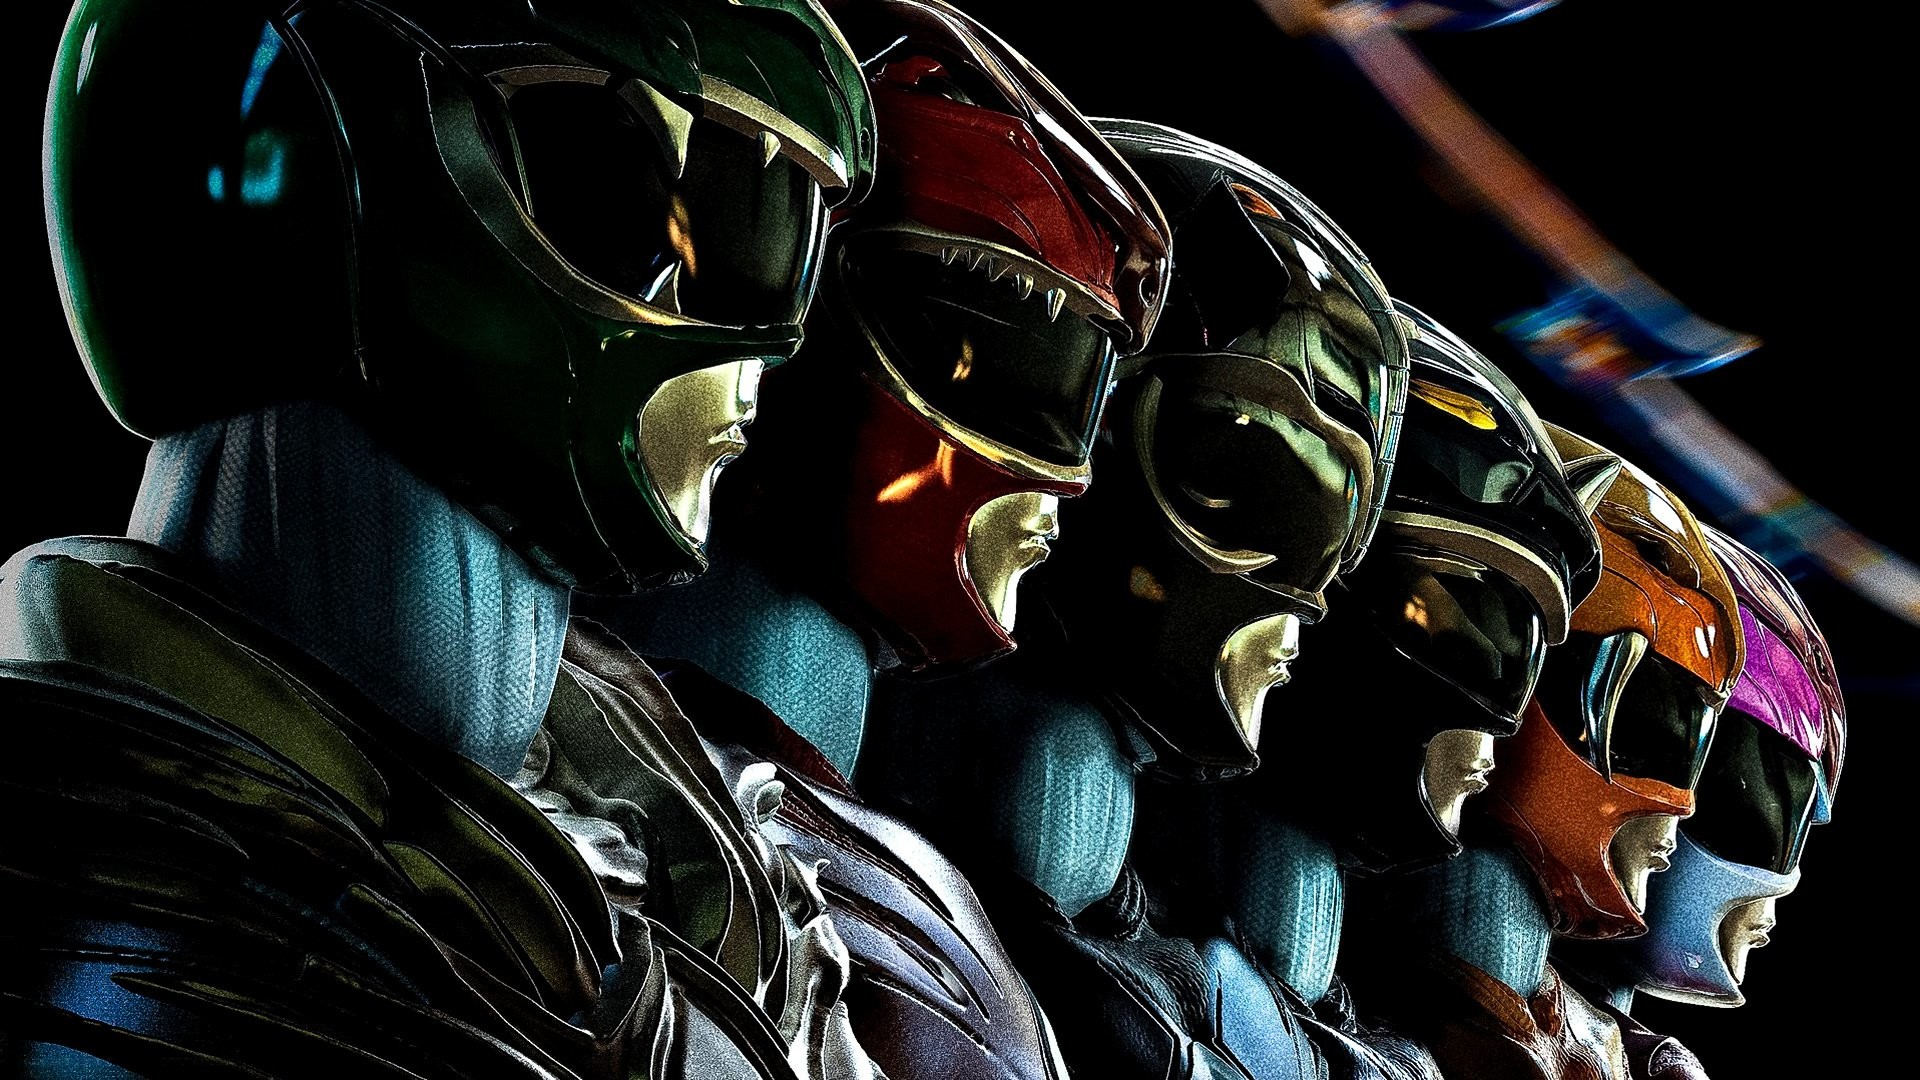 Res: 1920x1080, Power Rangers Wallpapers Hd cute Wallpapers - HD Wallpapers